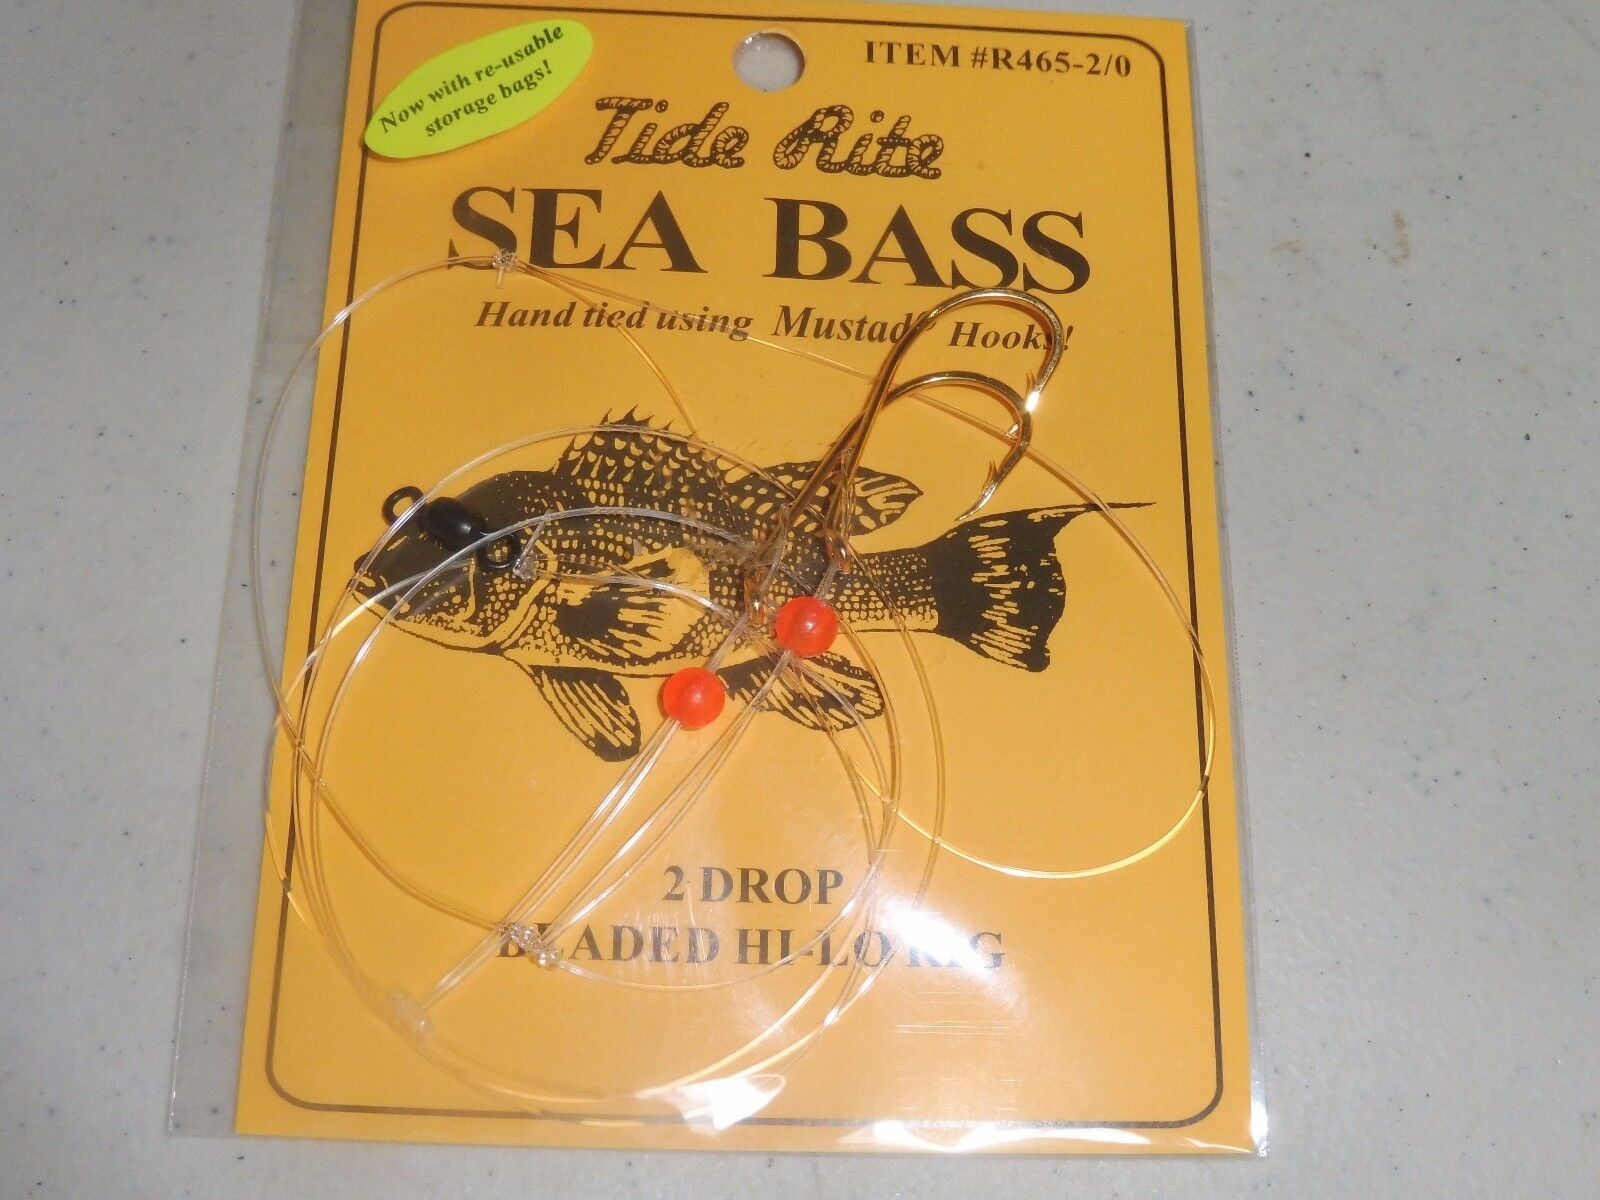 6 Sea Bass Black Tide Rite R465-20 2 Drop Beaded Hi-lo Saltwater Fish Rig